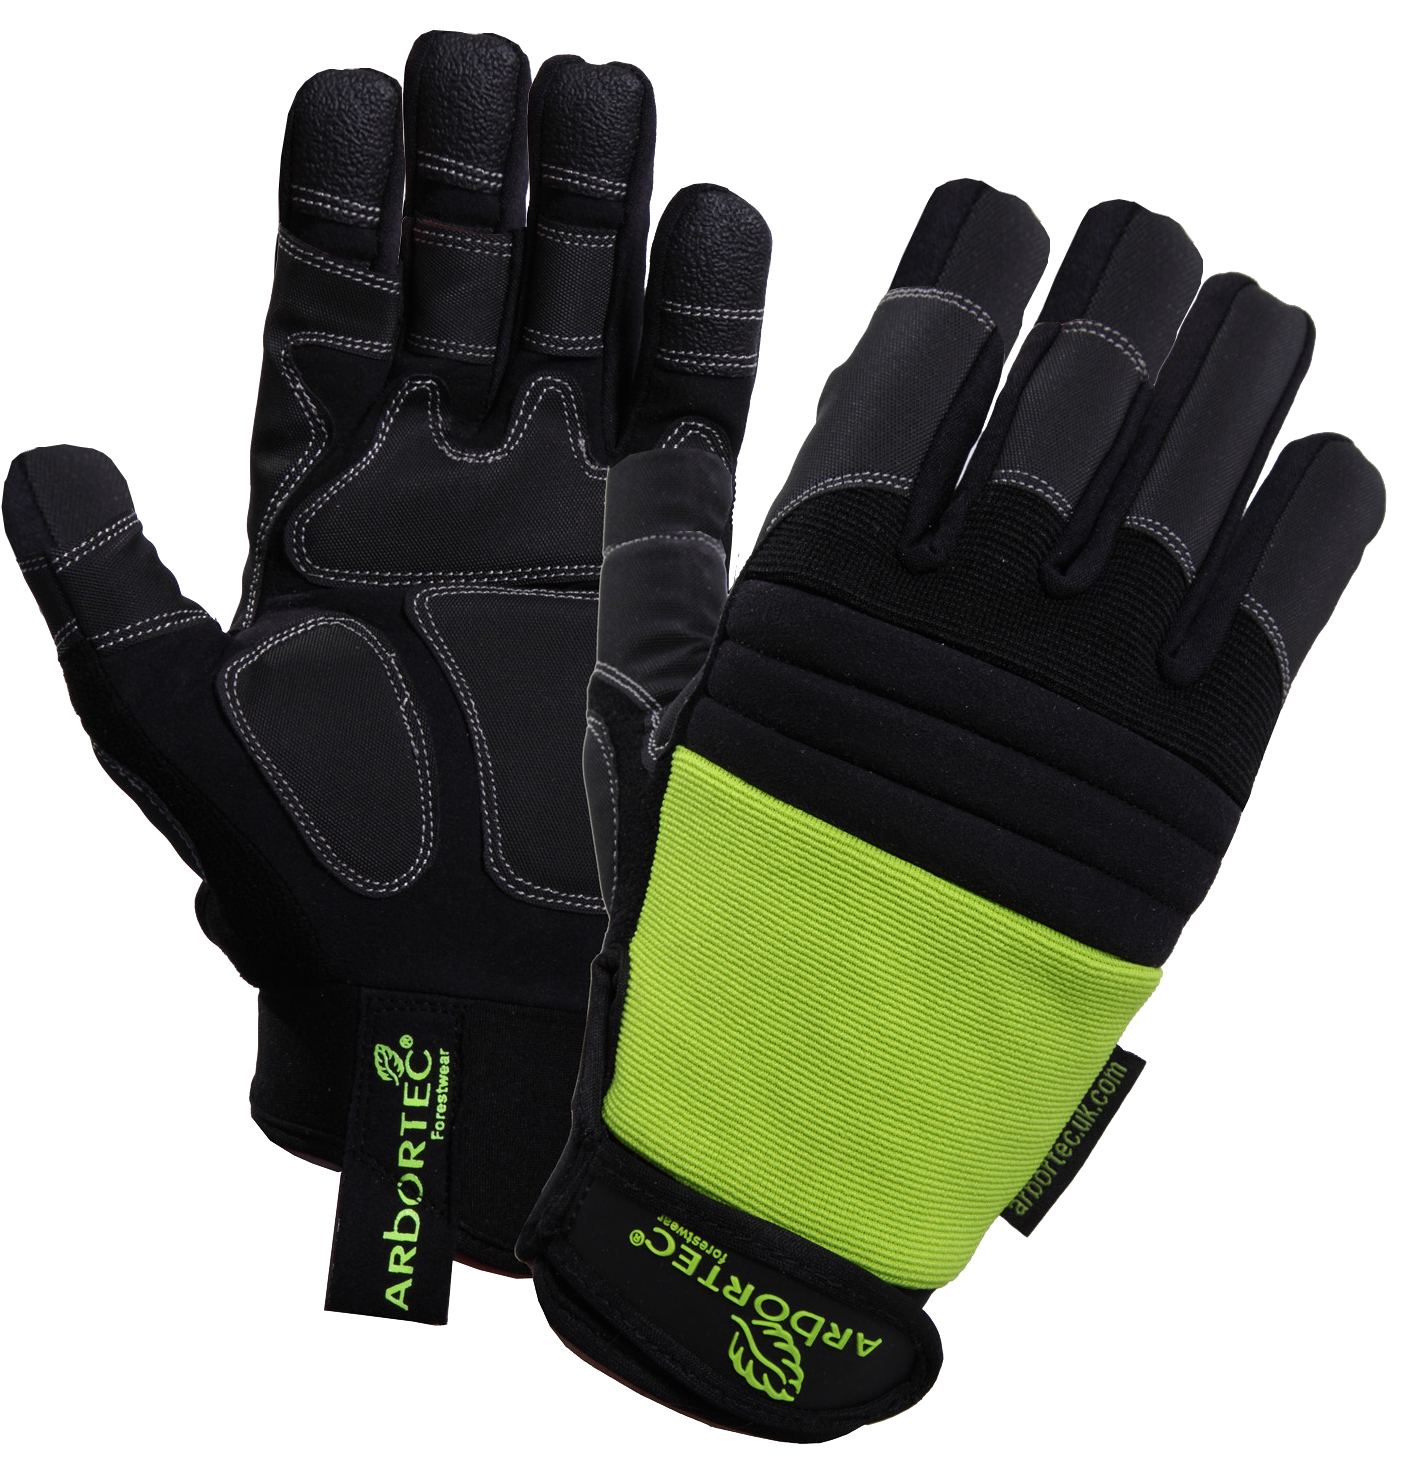 uploads gloves gloves PNG8274 4